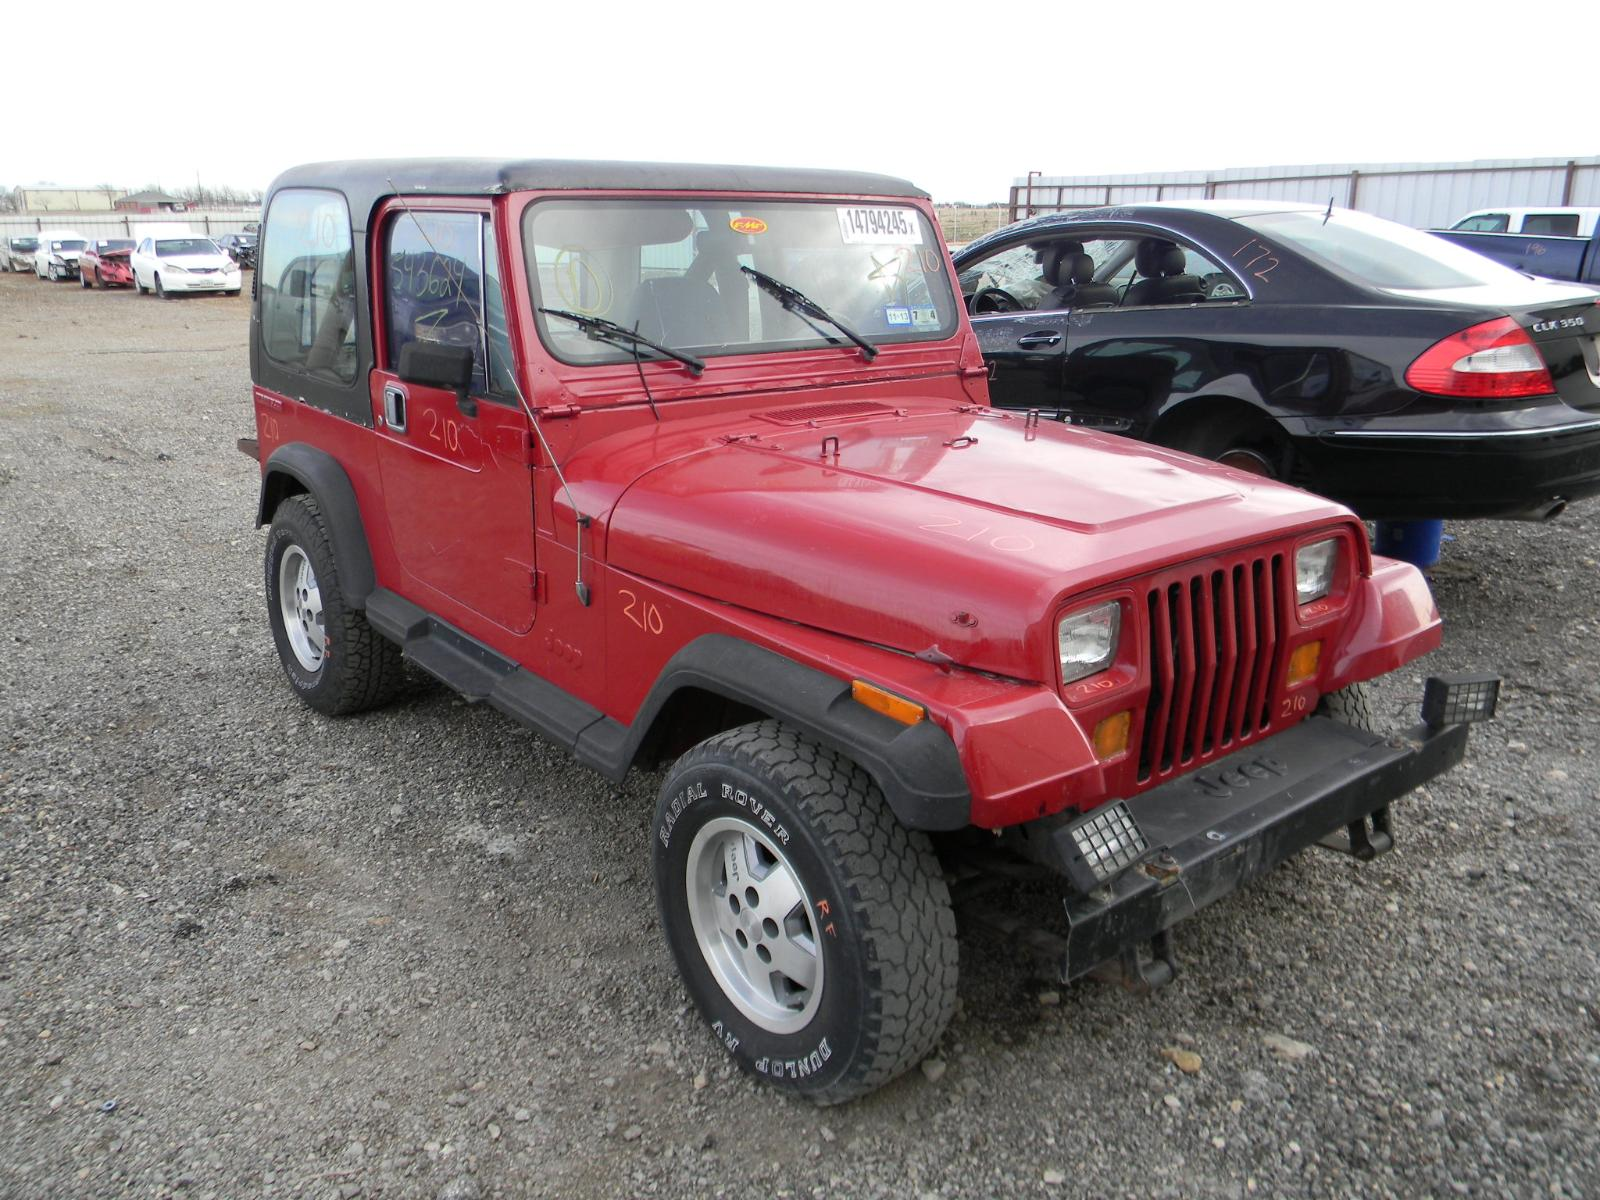 Jeep Yj Service Manual Gpw Wiring Diagram Wrangler Repair For Fj Fleetvan Pictured Right Call Speak Our Spare Division